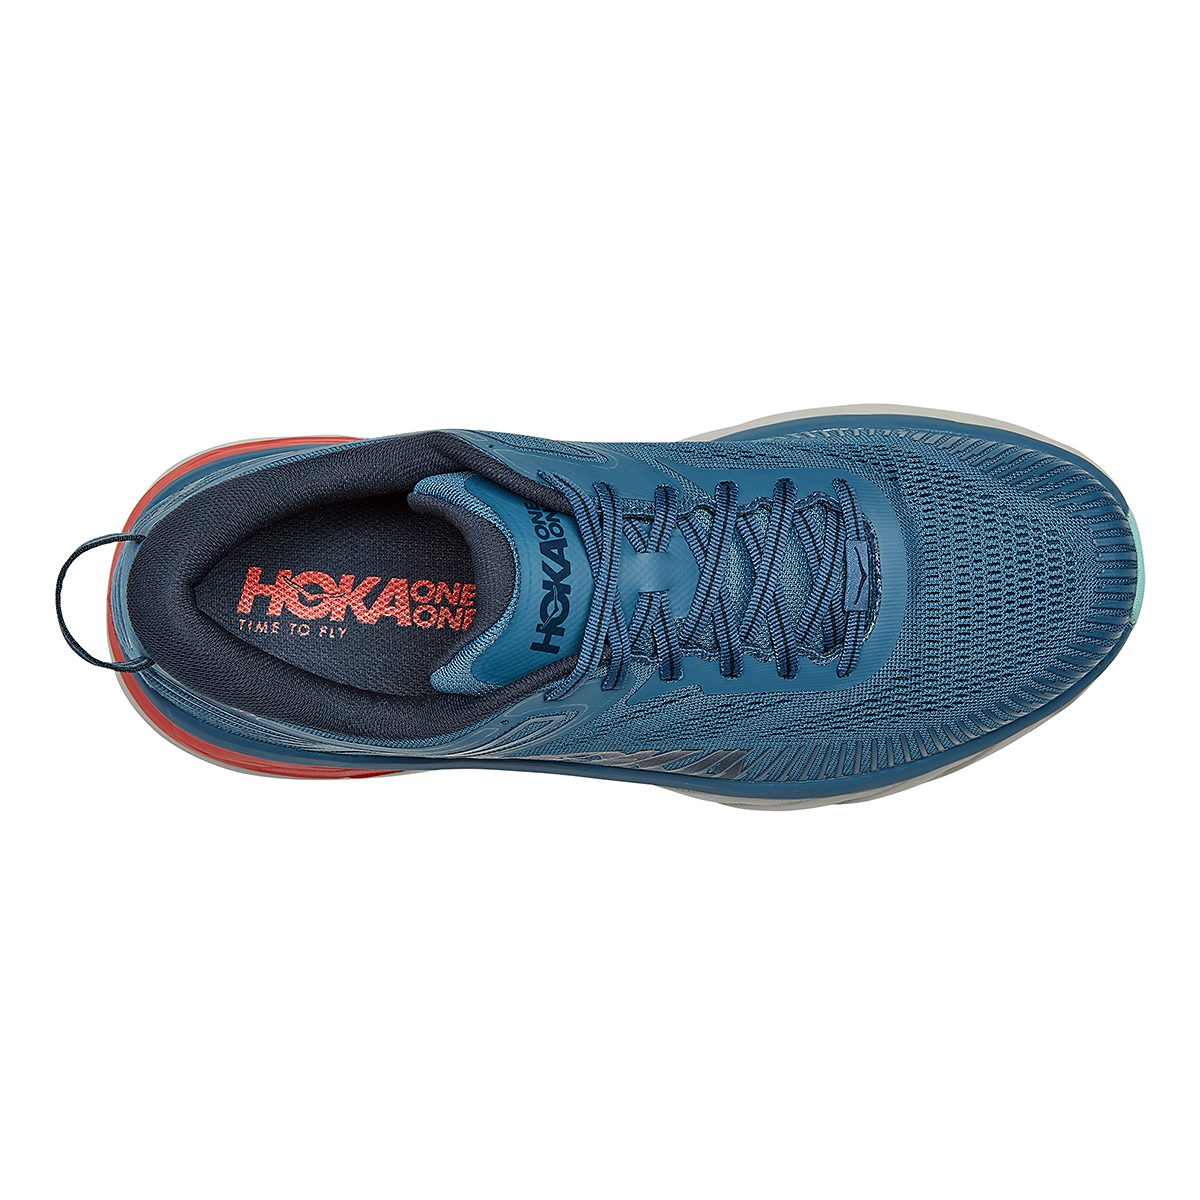 Men's Hoka One One Bondi 7 Running Shoe - Color: Real Teal/Outer Space - Size: 7 - Width: Regular, Real Teal/Outer Space, large, image 5